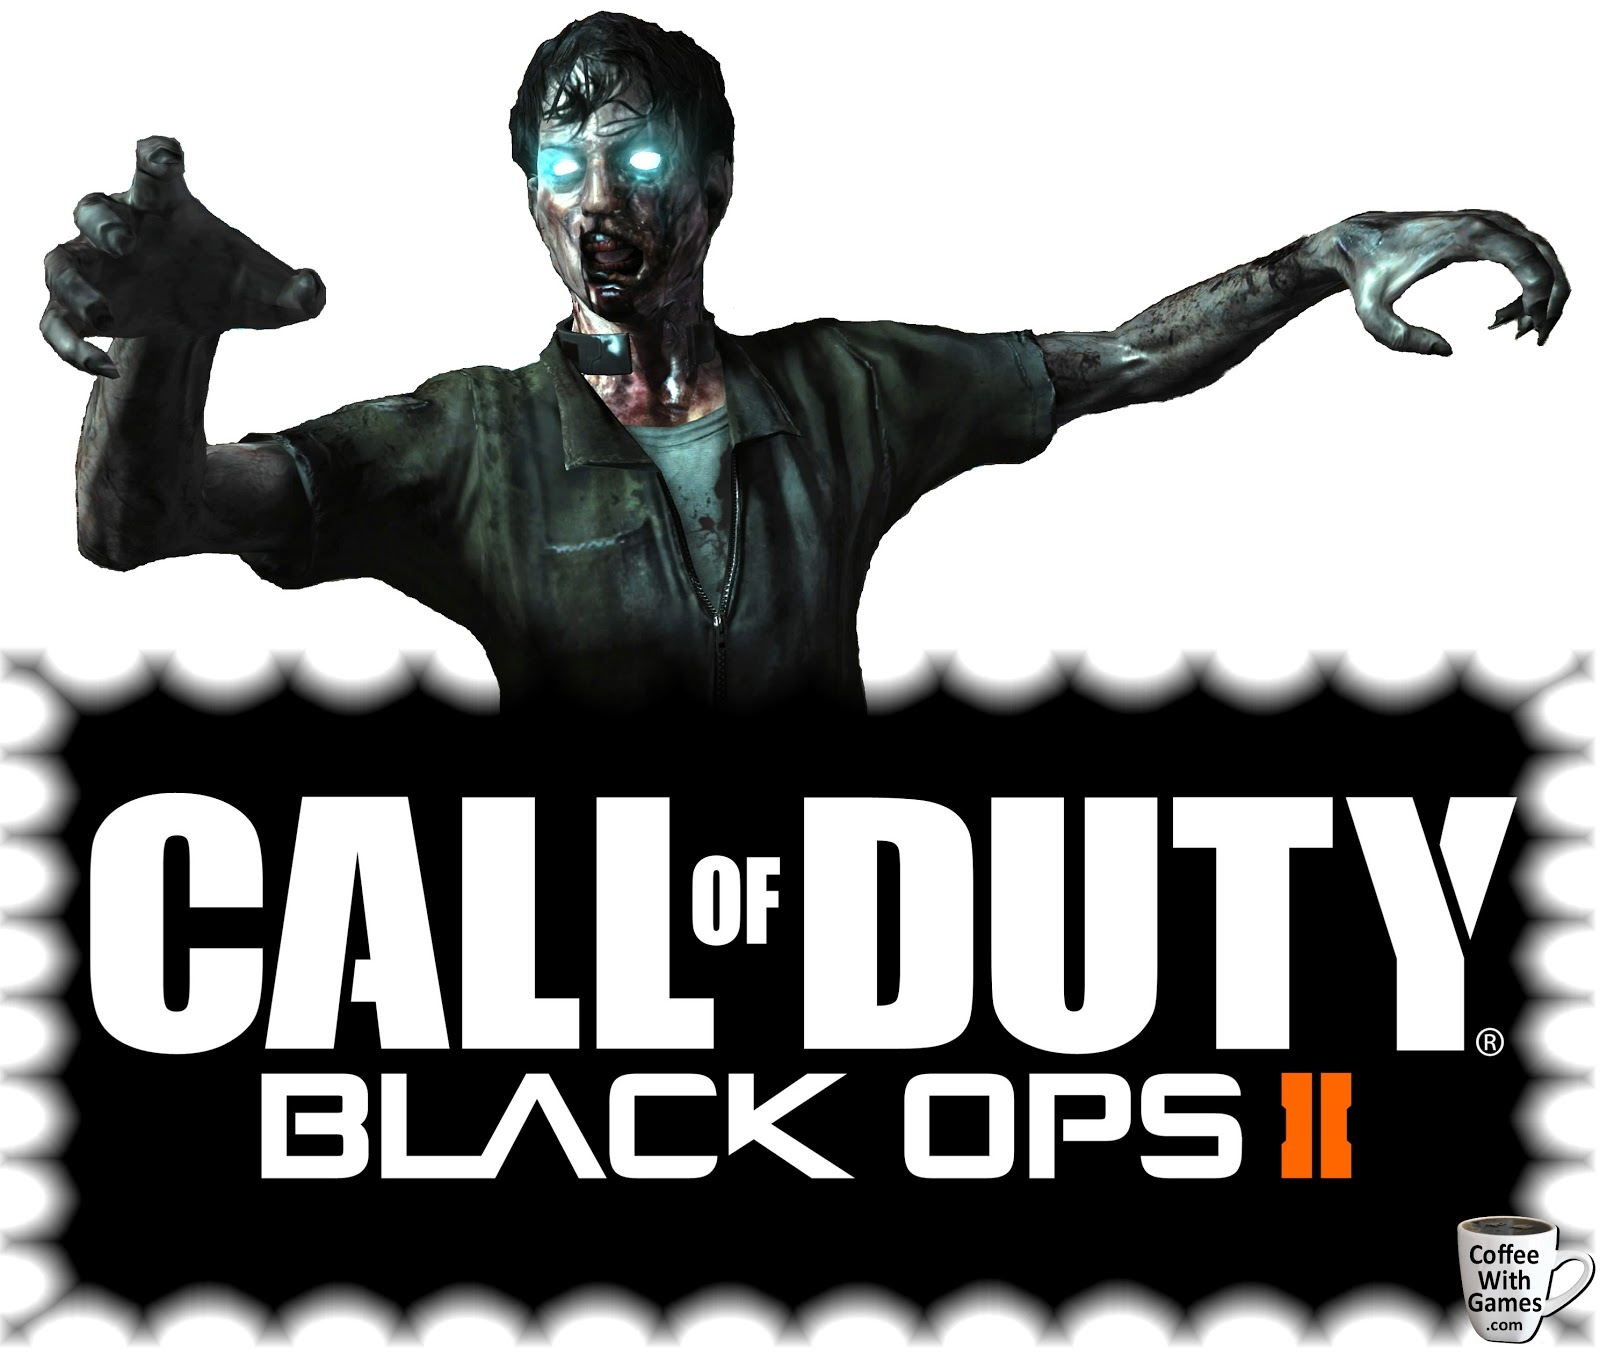 Wii U Black Ops 2 Zombies : Coffee with games quot black ops ii will just be on the wii u